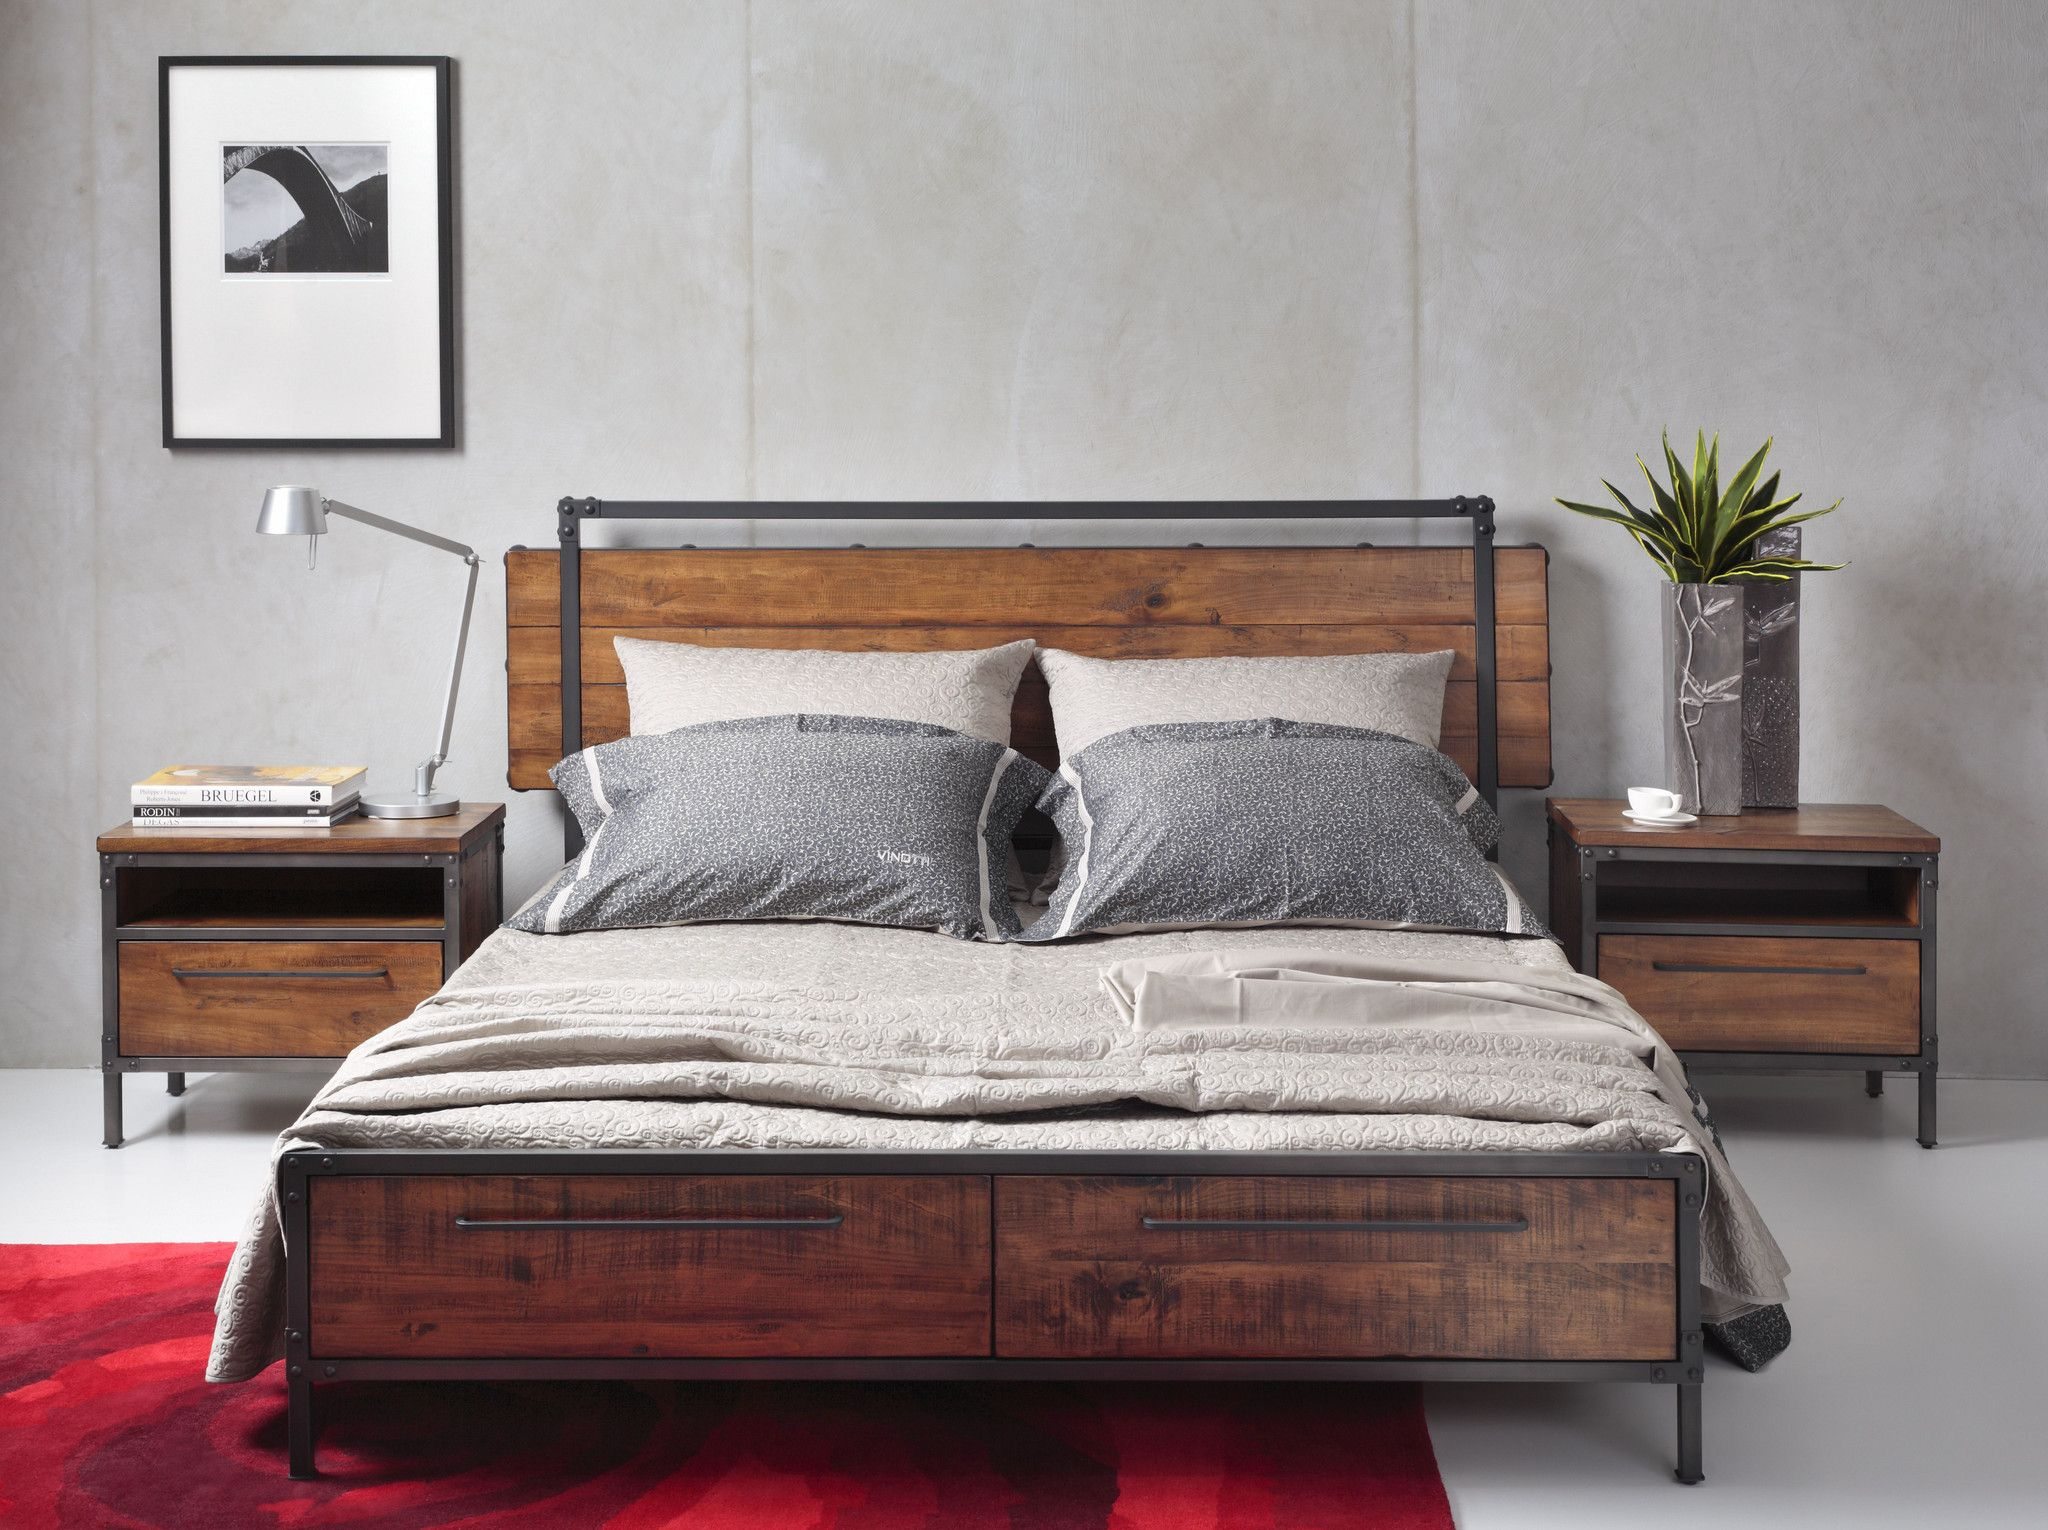 CHICAGO Solid Wood Queen Bed with Drawers Wood bed frame